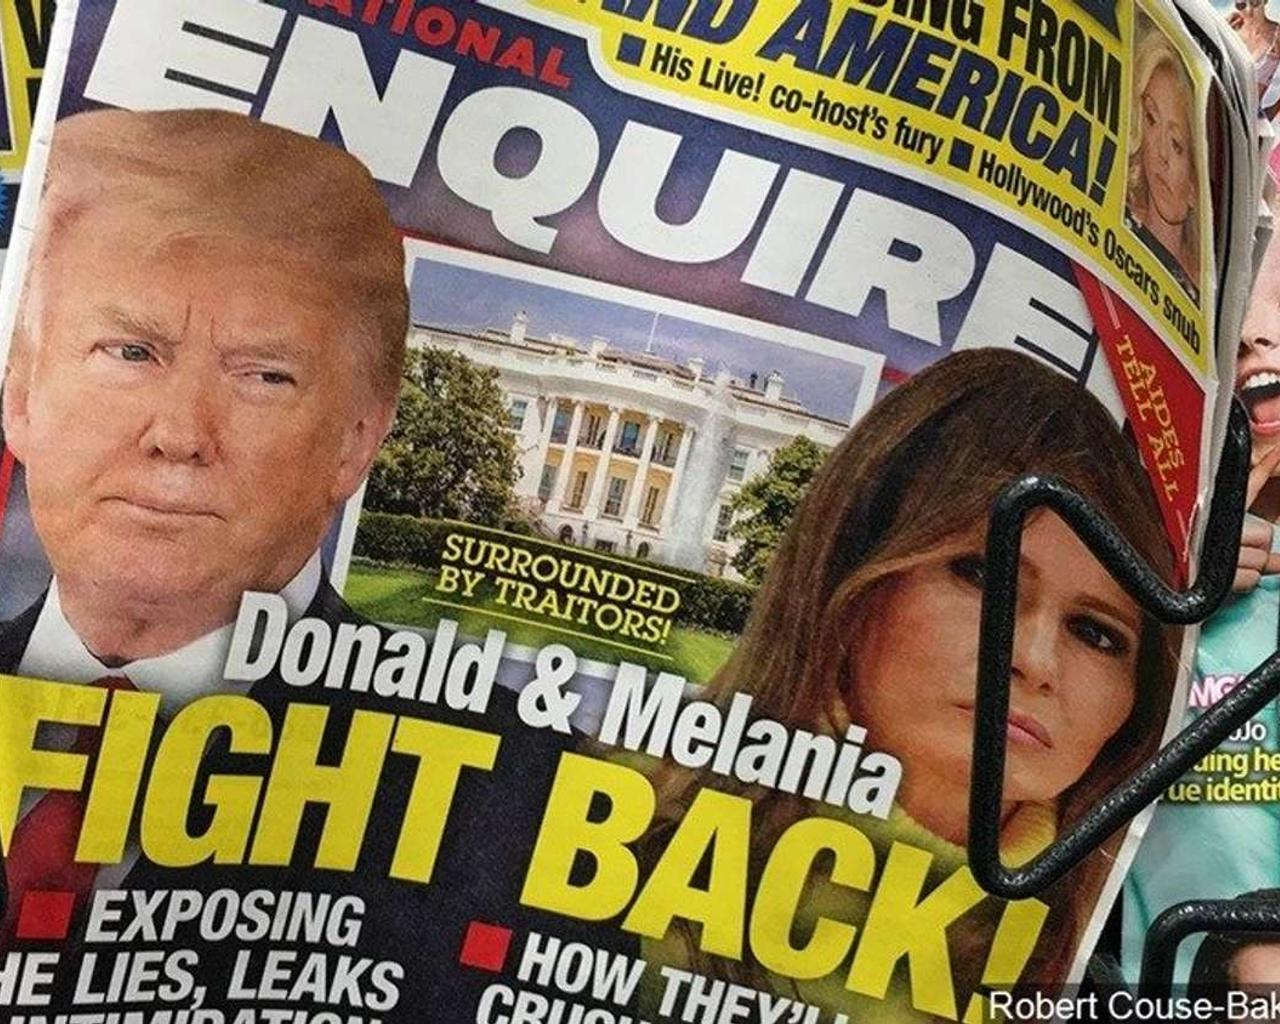 The National Enquirer Has A New Owner — Will It Now Cover Famous People Like Donald Trump Differently?